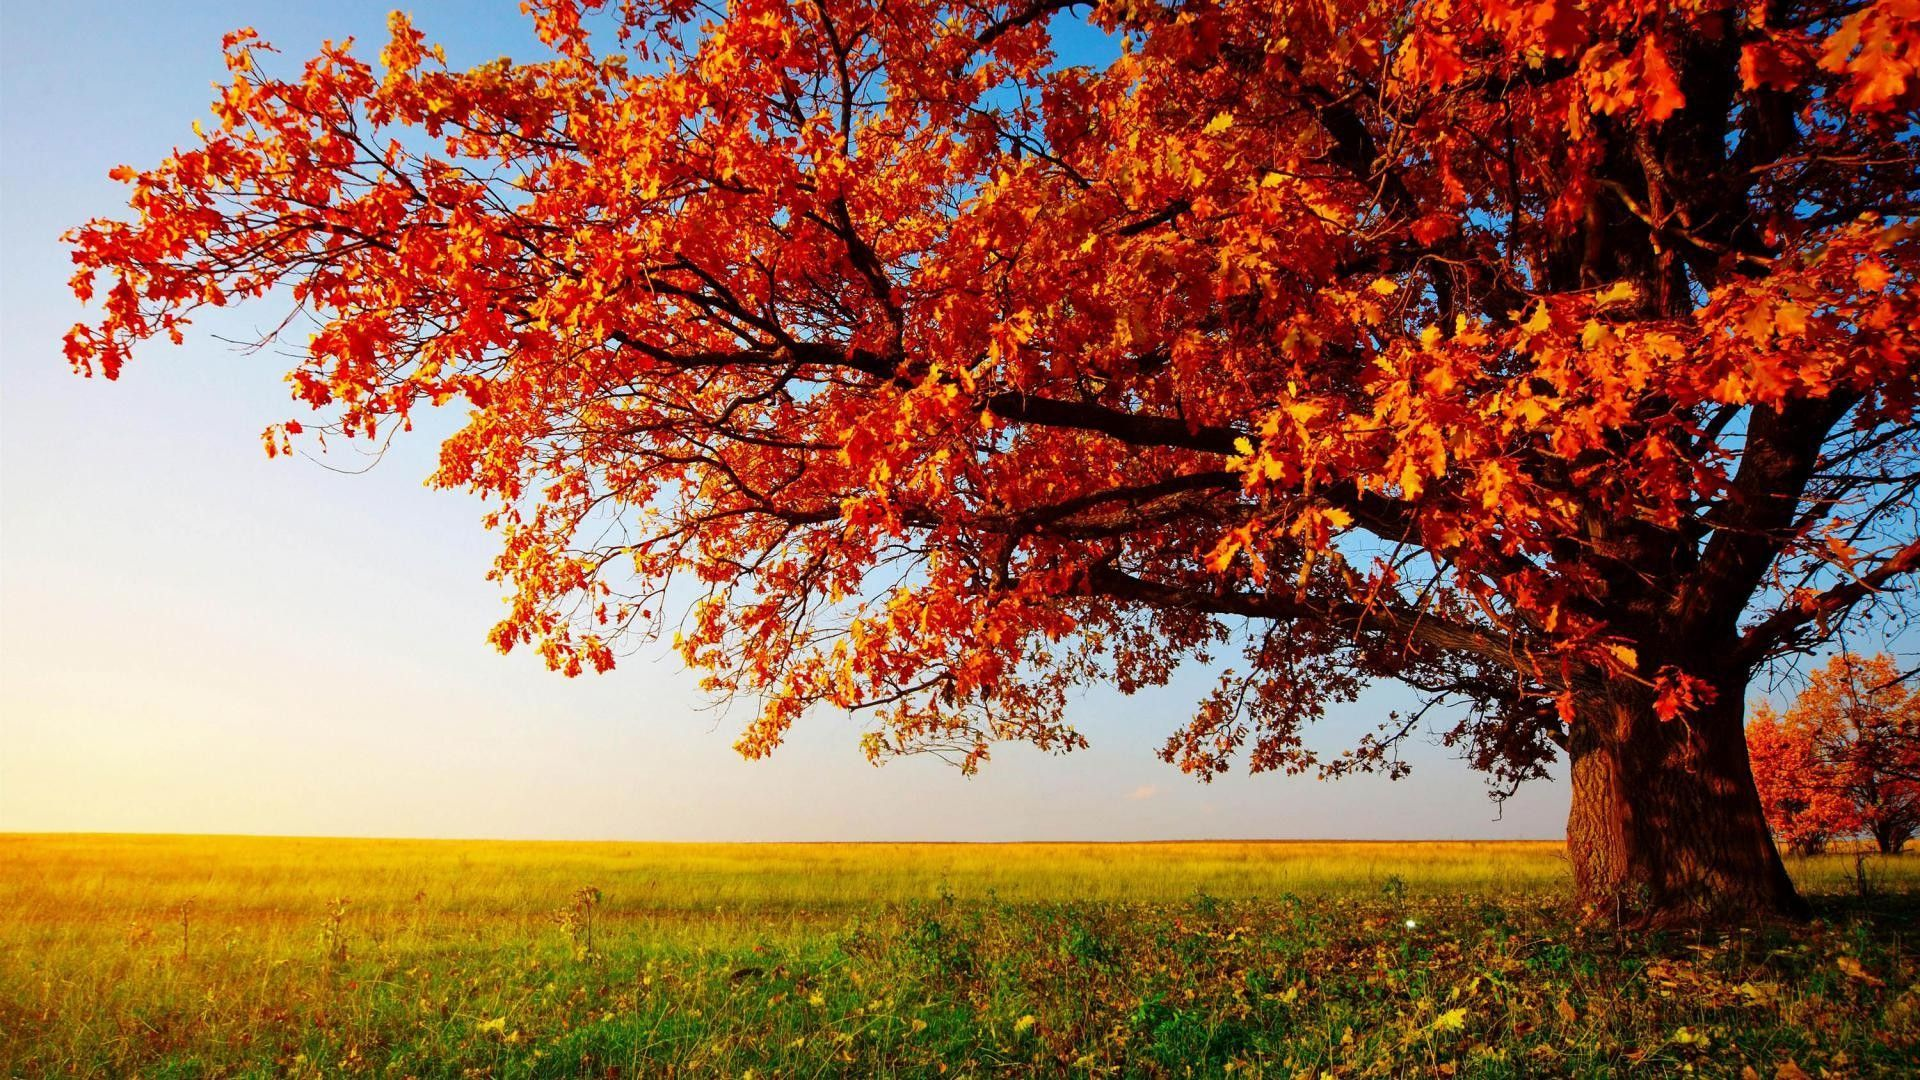 Hd Wallpapers For Pc Beautiful